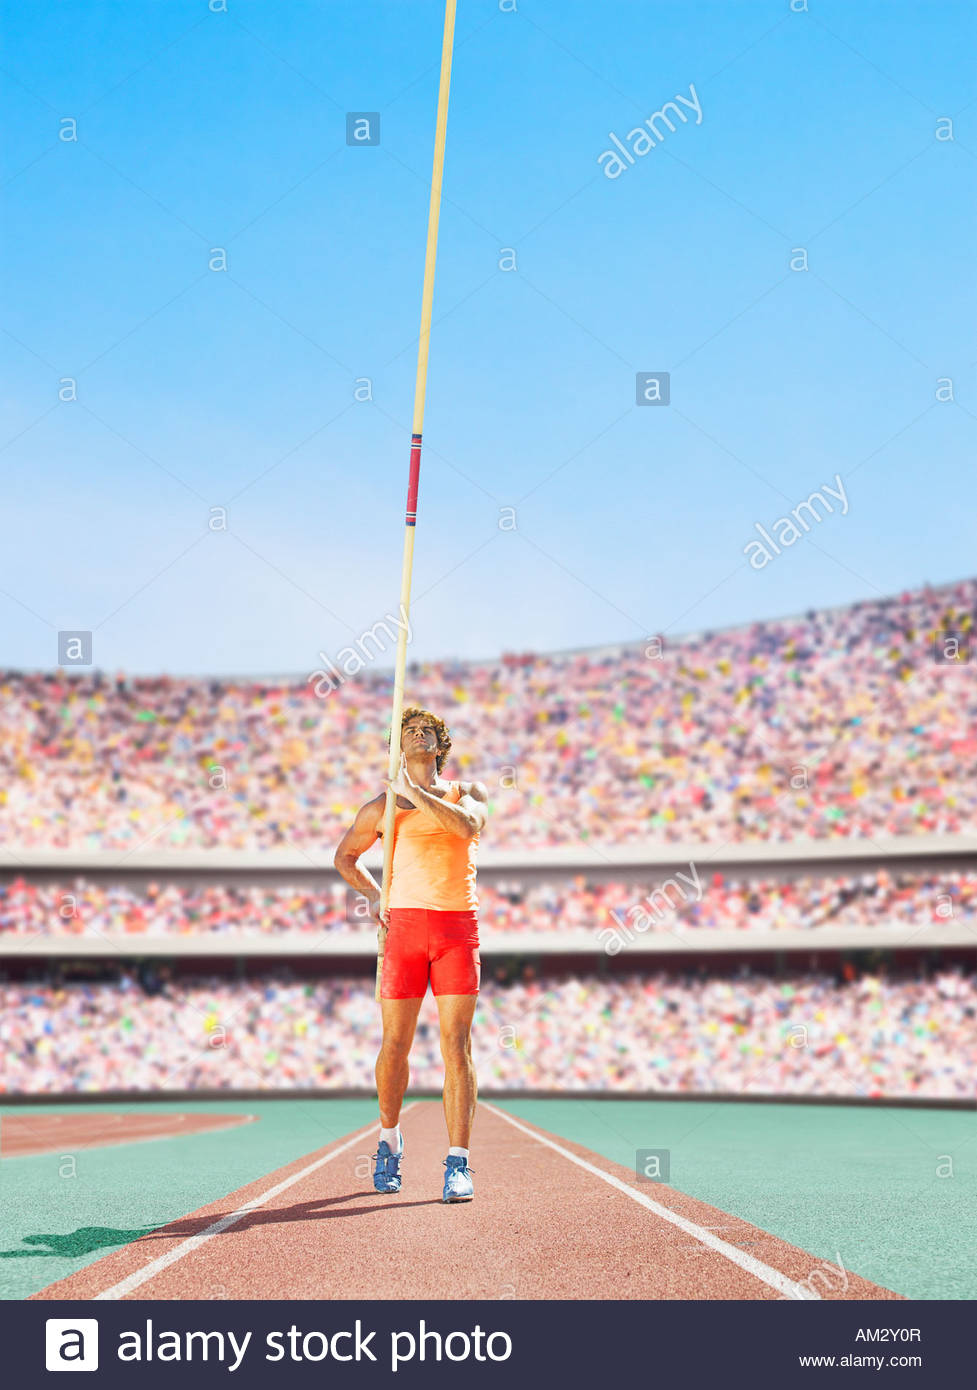 Athlete with pole vault in an arena - Stock Image